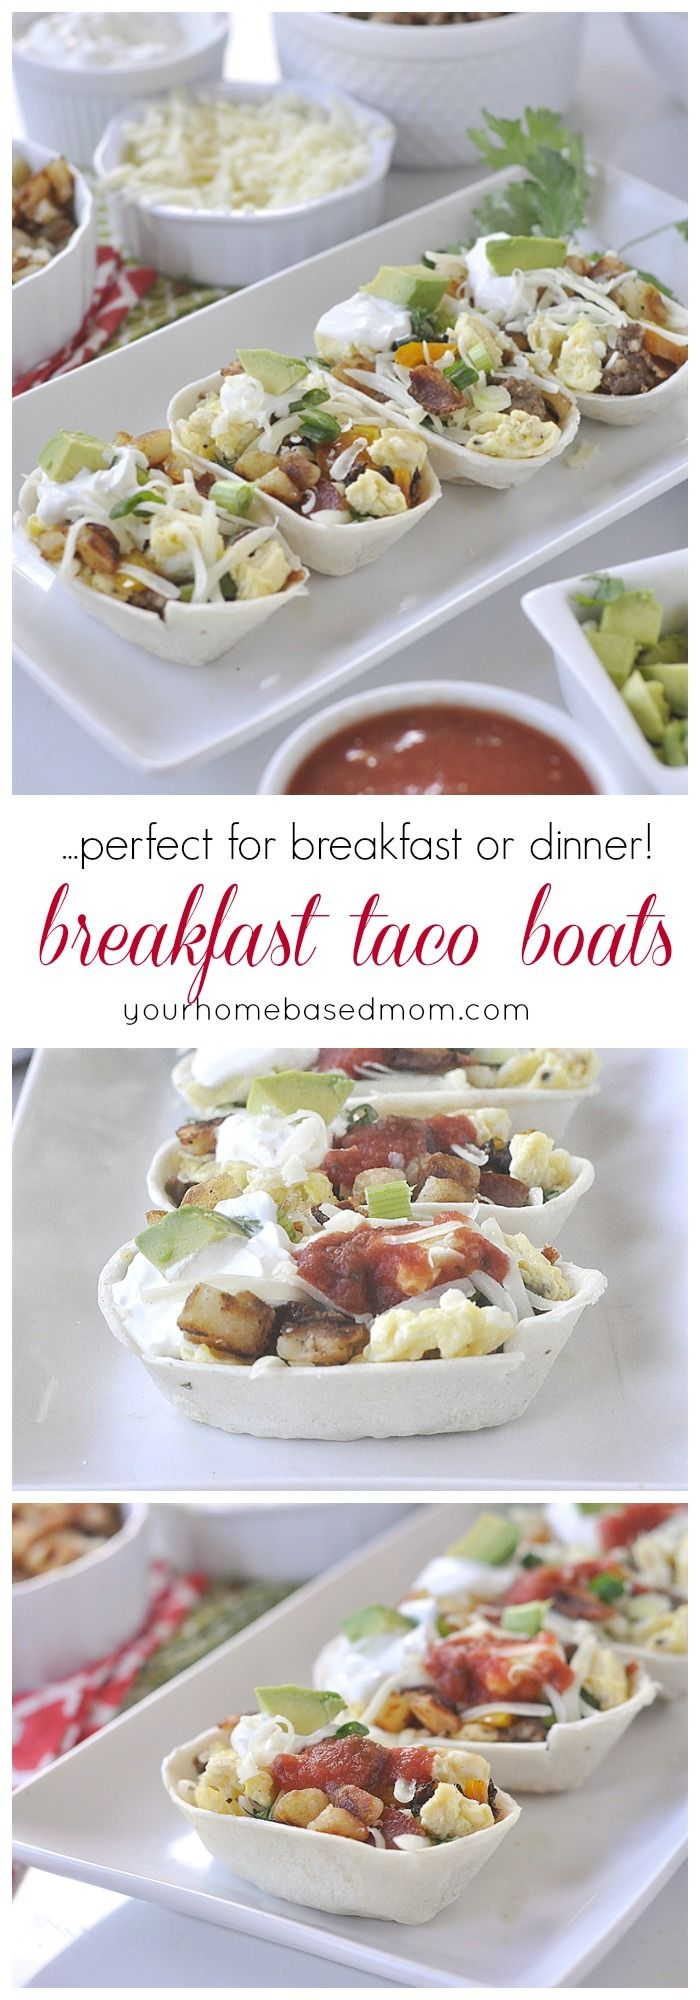 Breakfast Taco Boats - perfect for breakfast or  dinner! @OldElPaso  #TacoBoatSweepstakes  #TacoBoats #ad